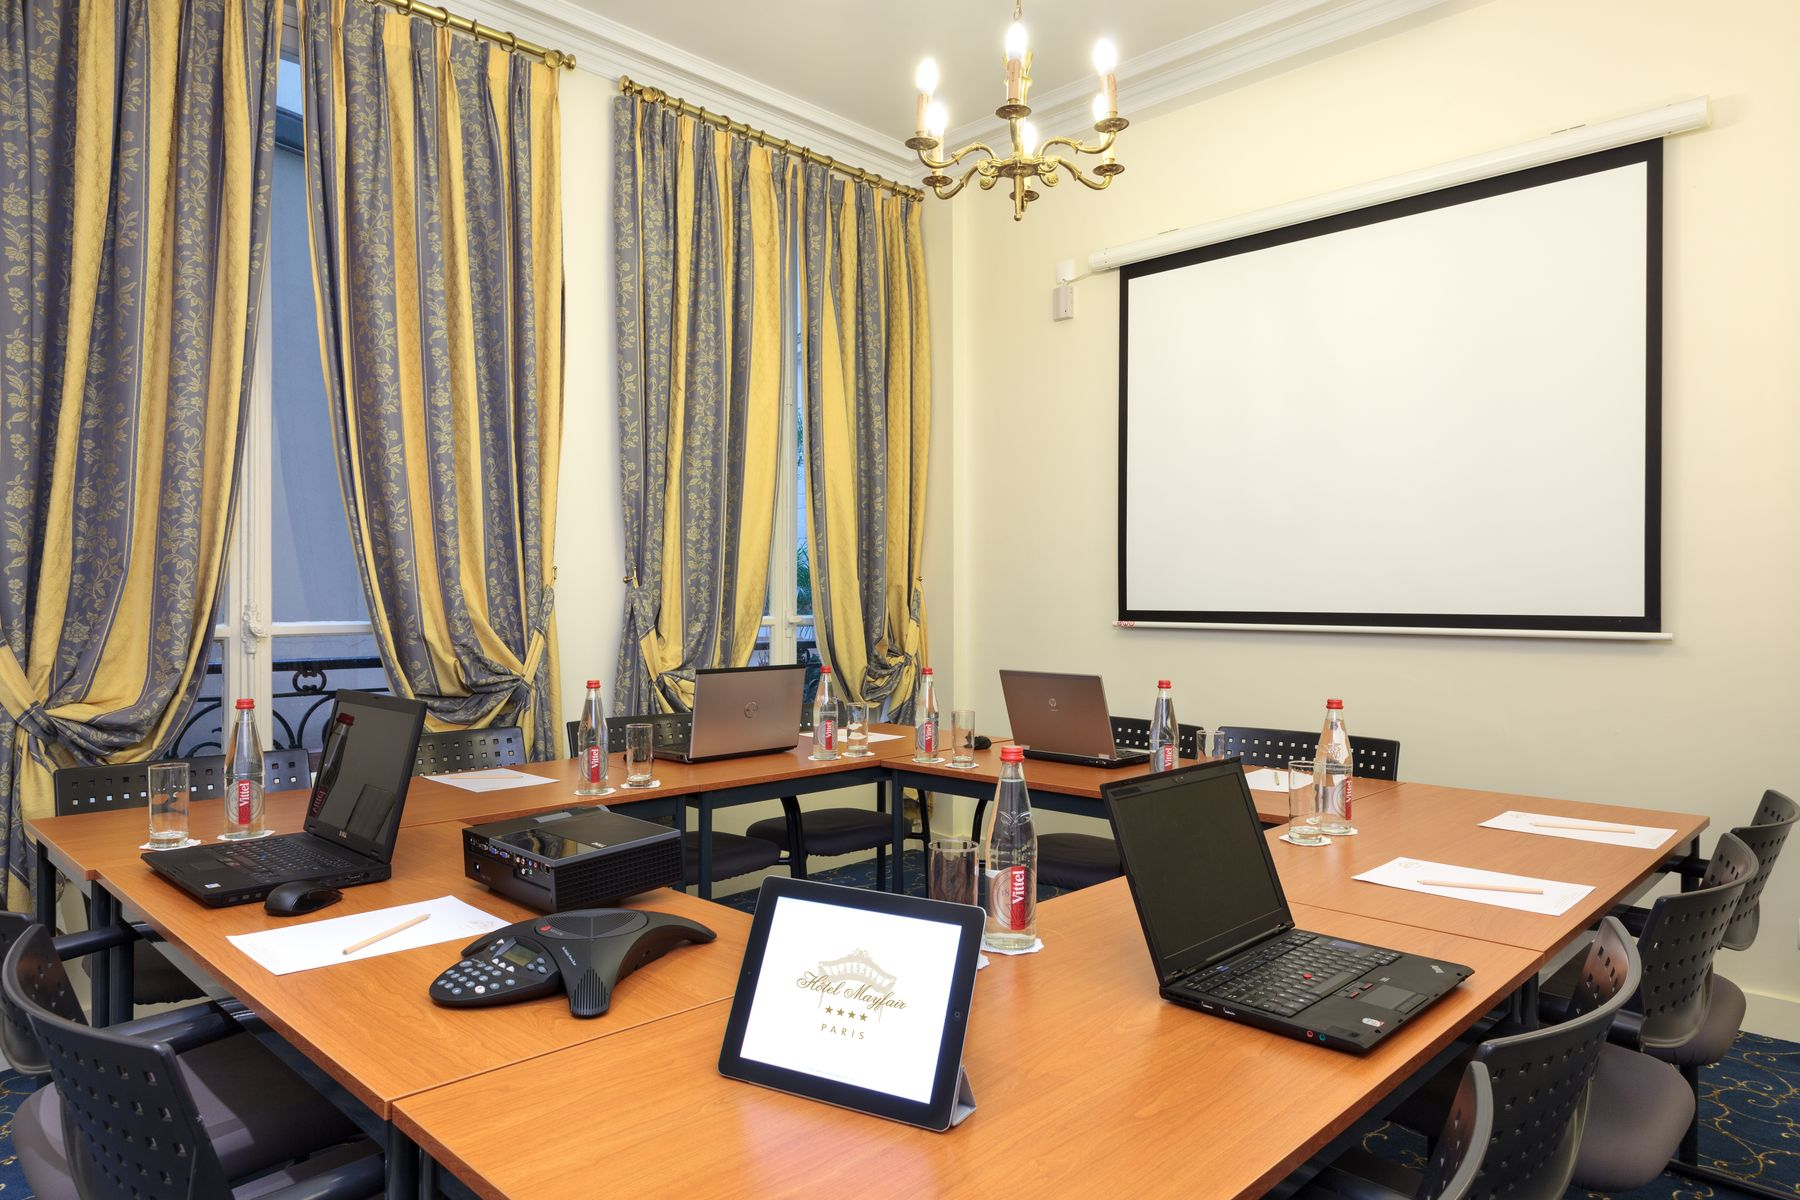 378/Galerie/8-Hotel Mayfair Paris Business Meeting Room 1_resultat.jpg